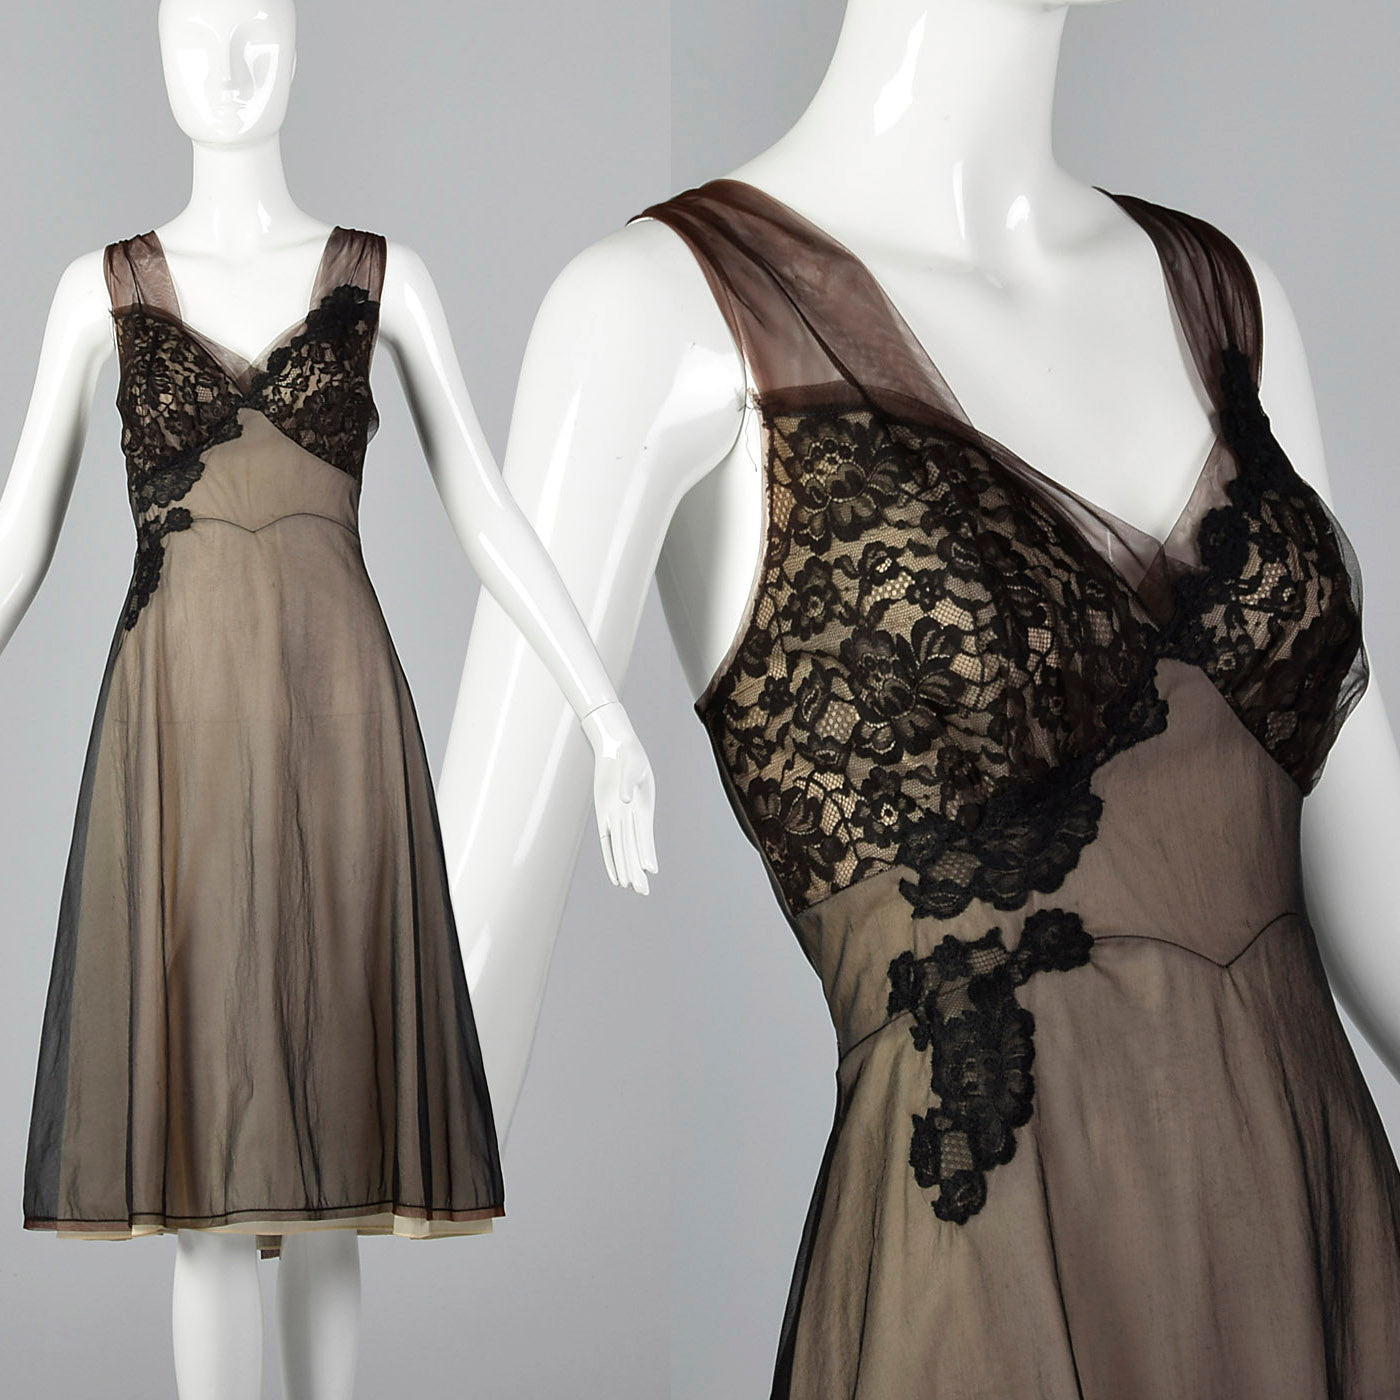 1950s Black Nightgown with Black Lace Applique